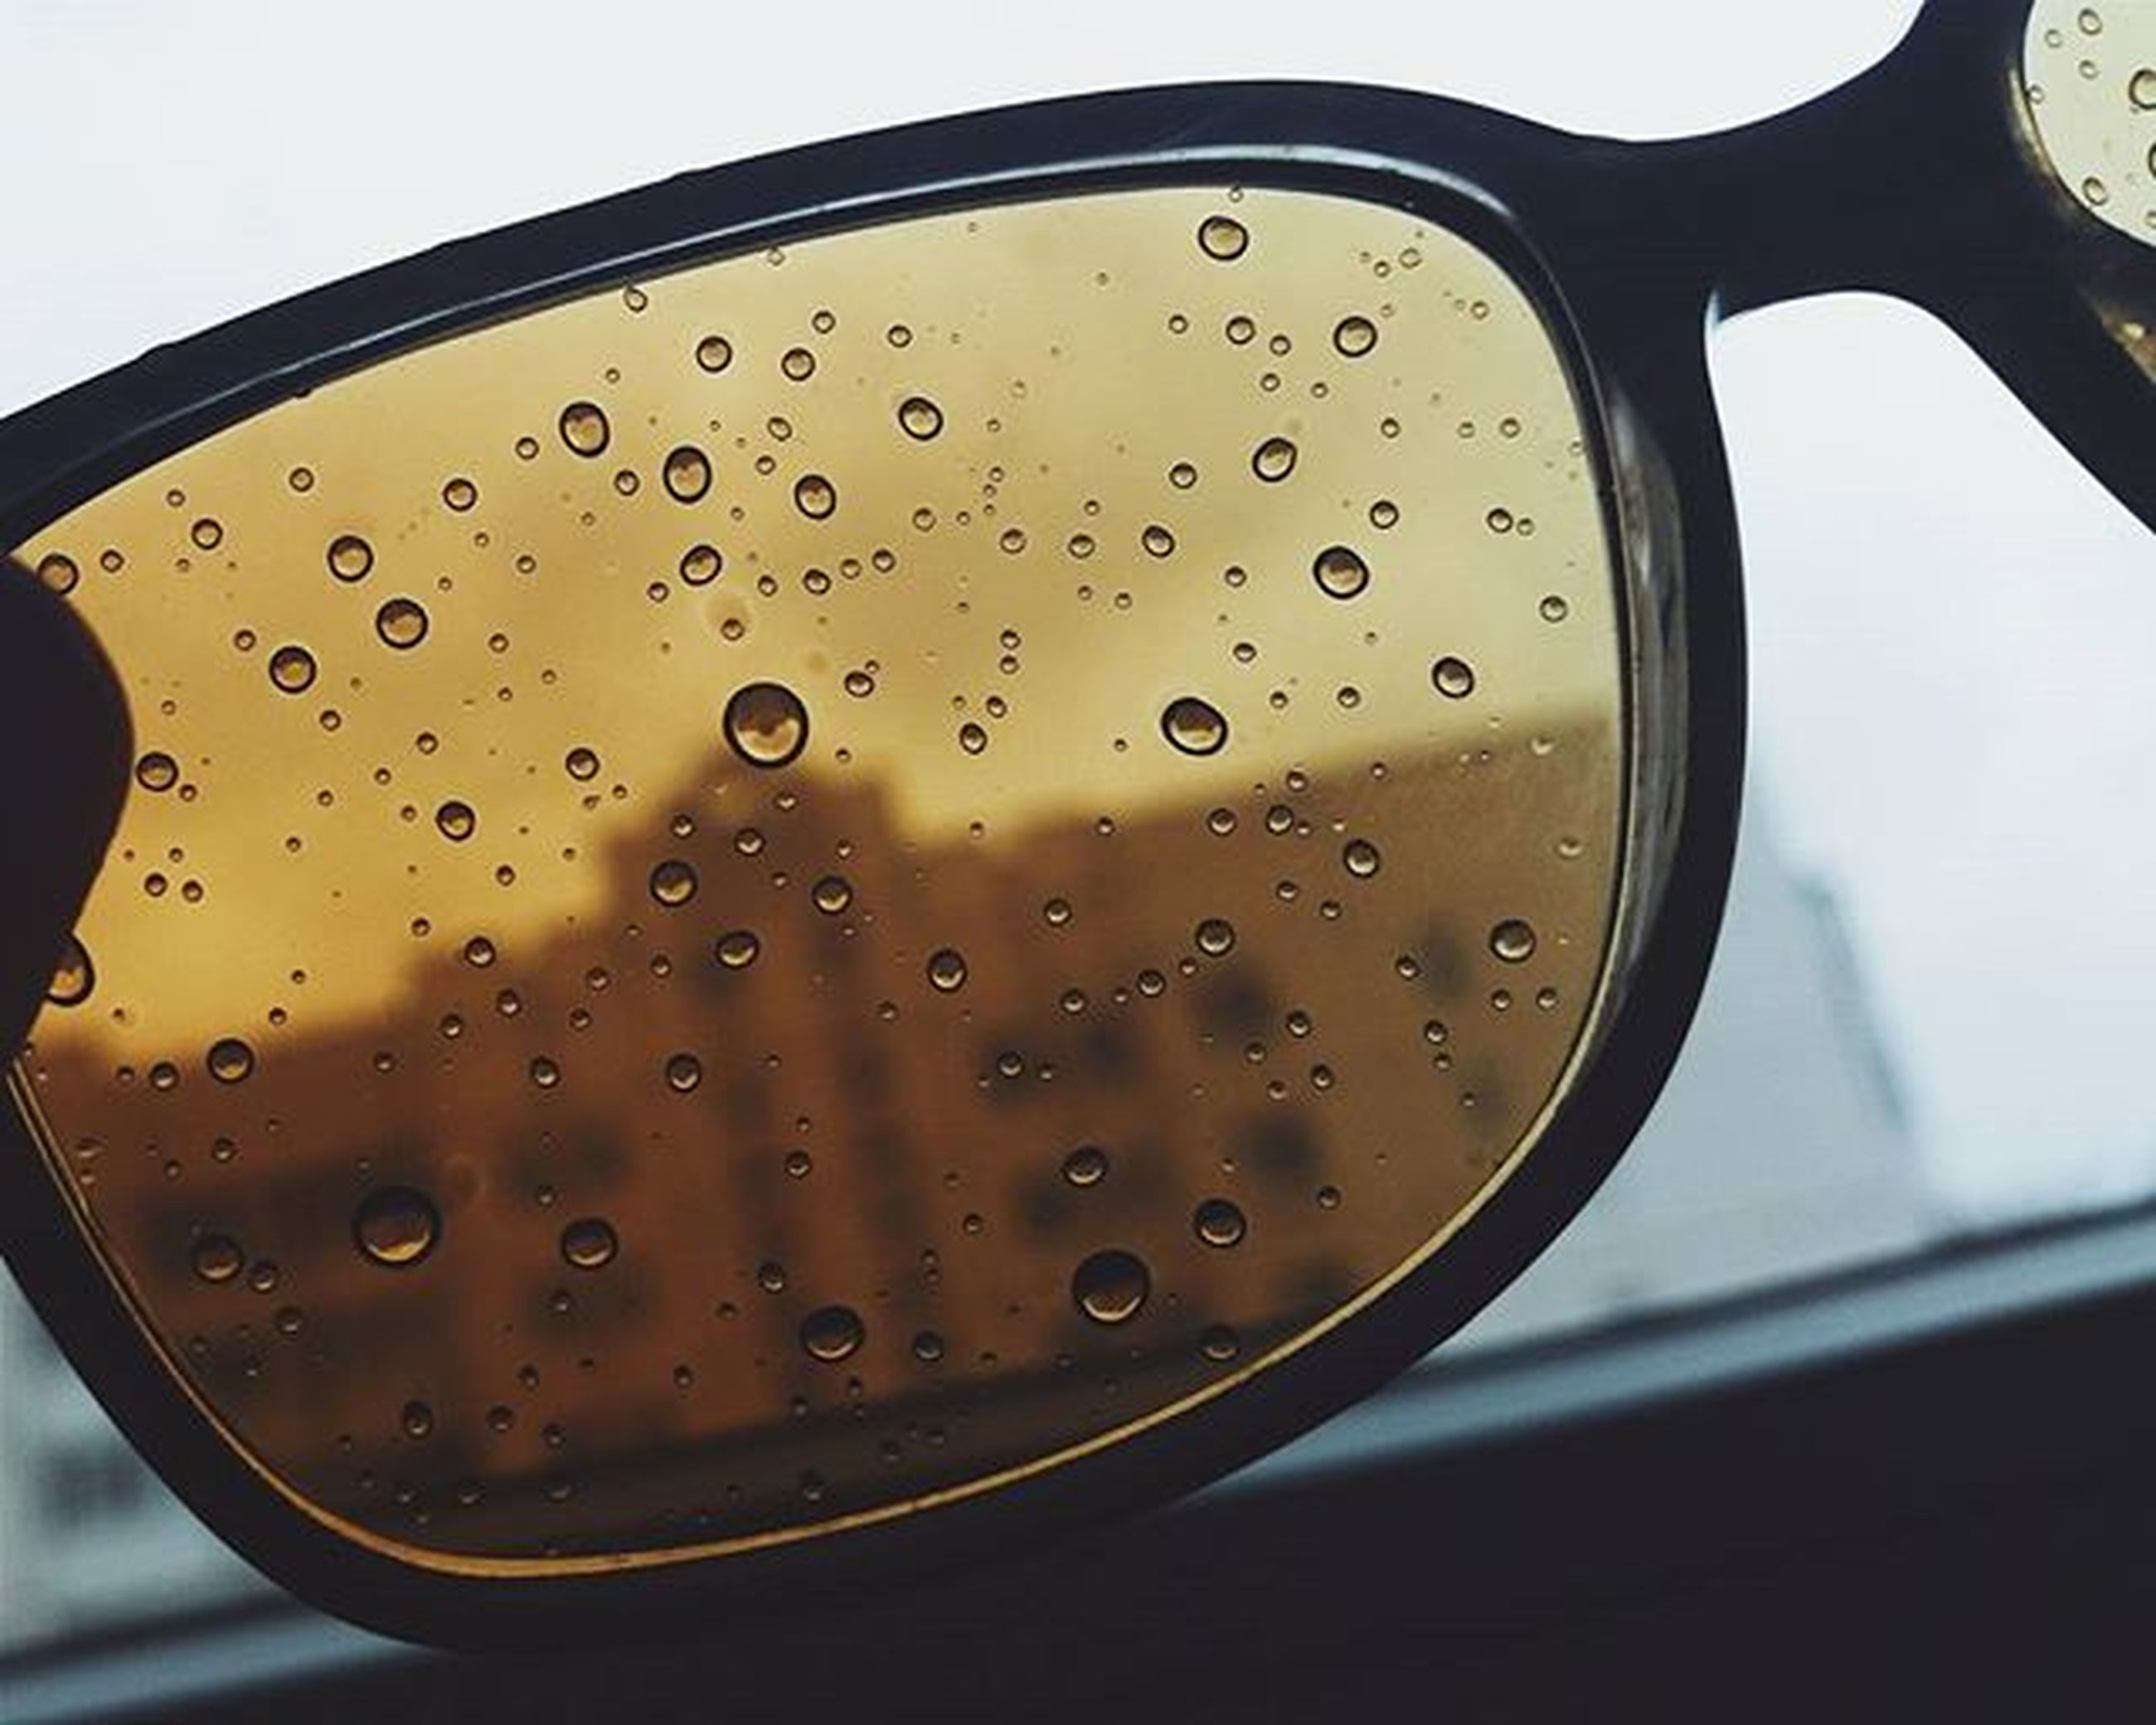 glass - material, transparent, drop, window, close-up, indoors, transportation, wet, vehicle interior, water, mode of transport, car, rain, focus on foreground, part of, car interior, side-view mirror, glass, land vehicle, sky